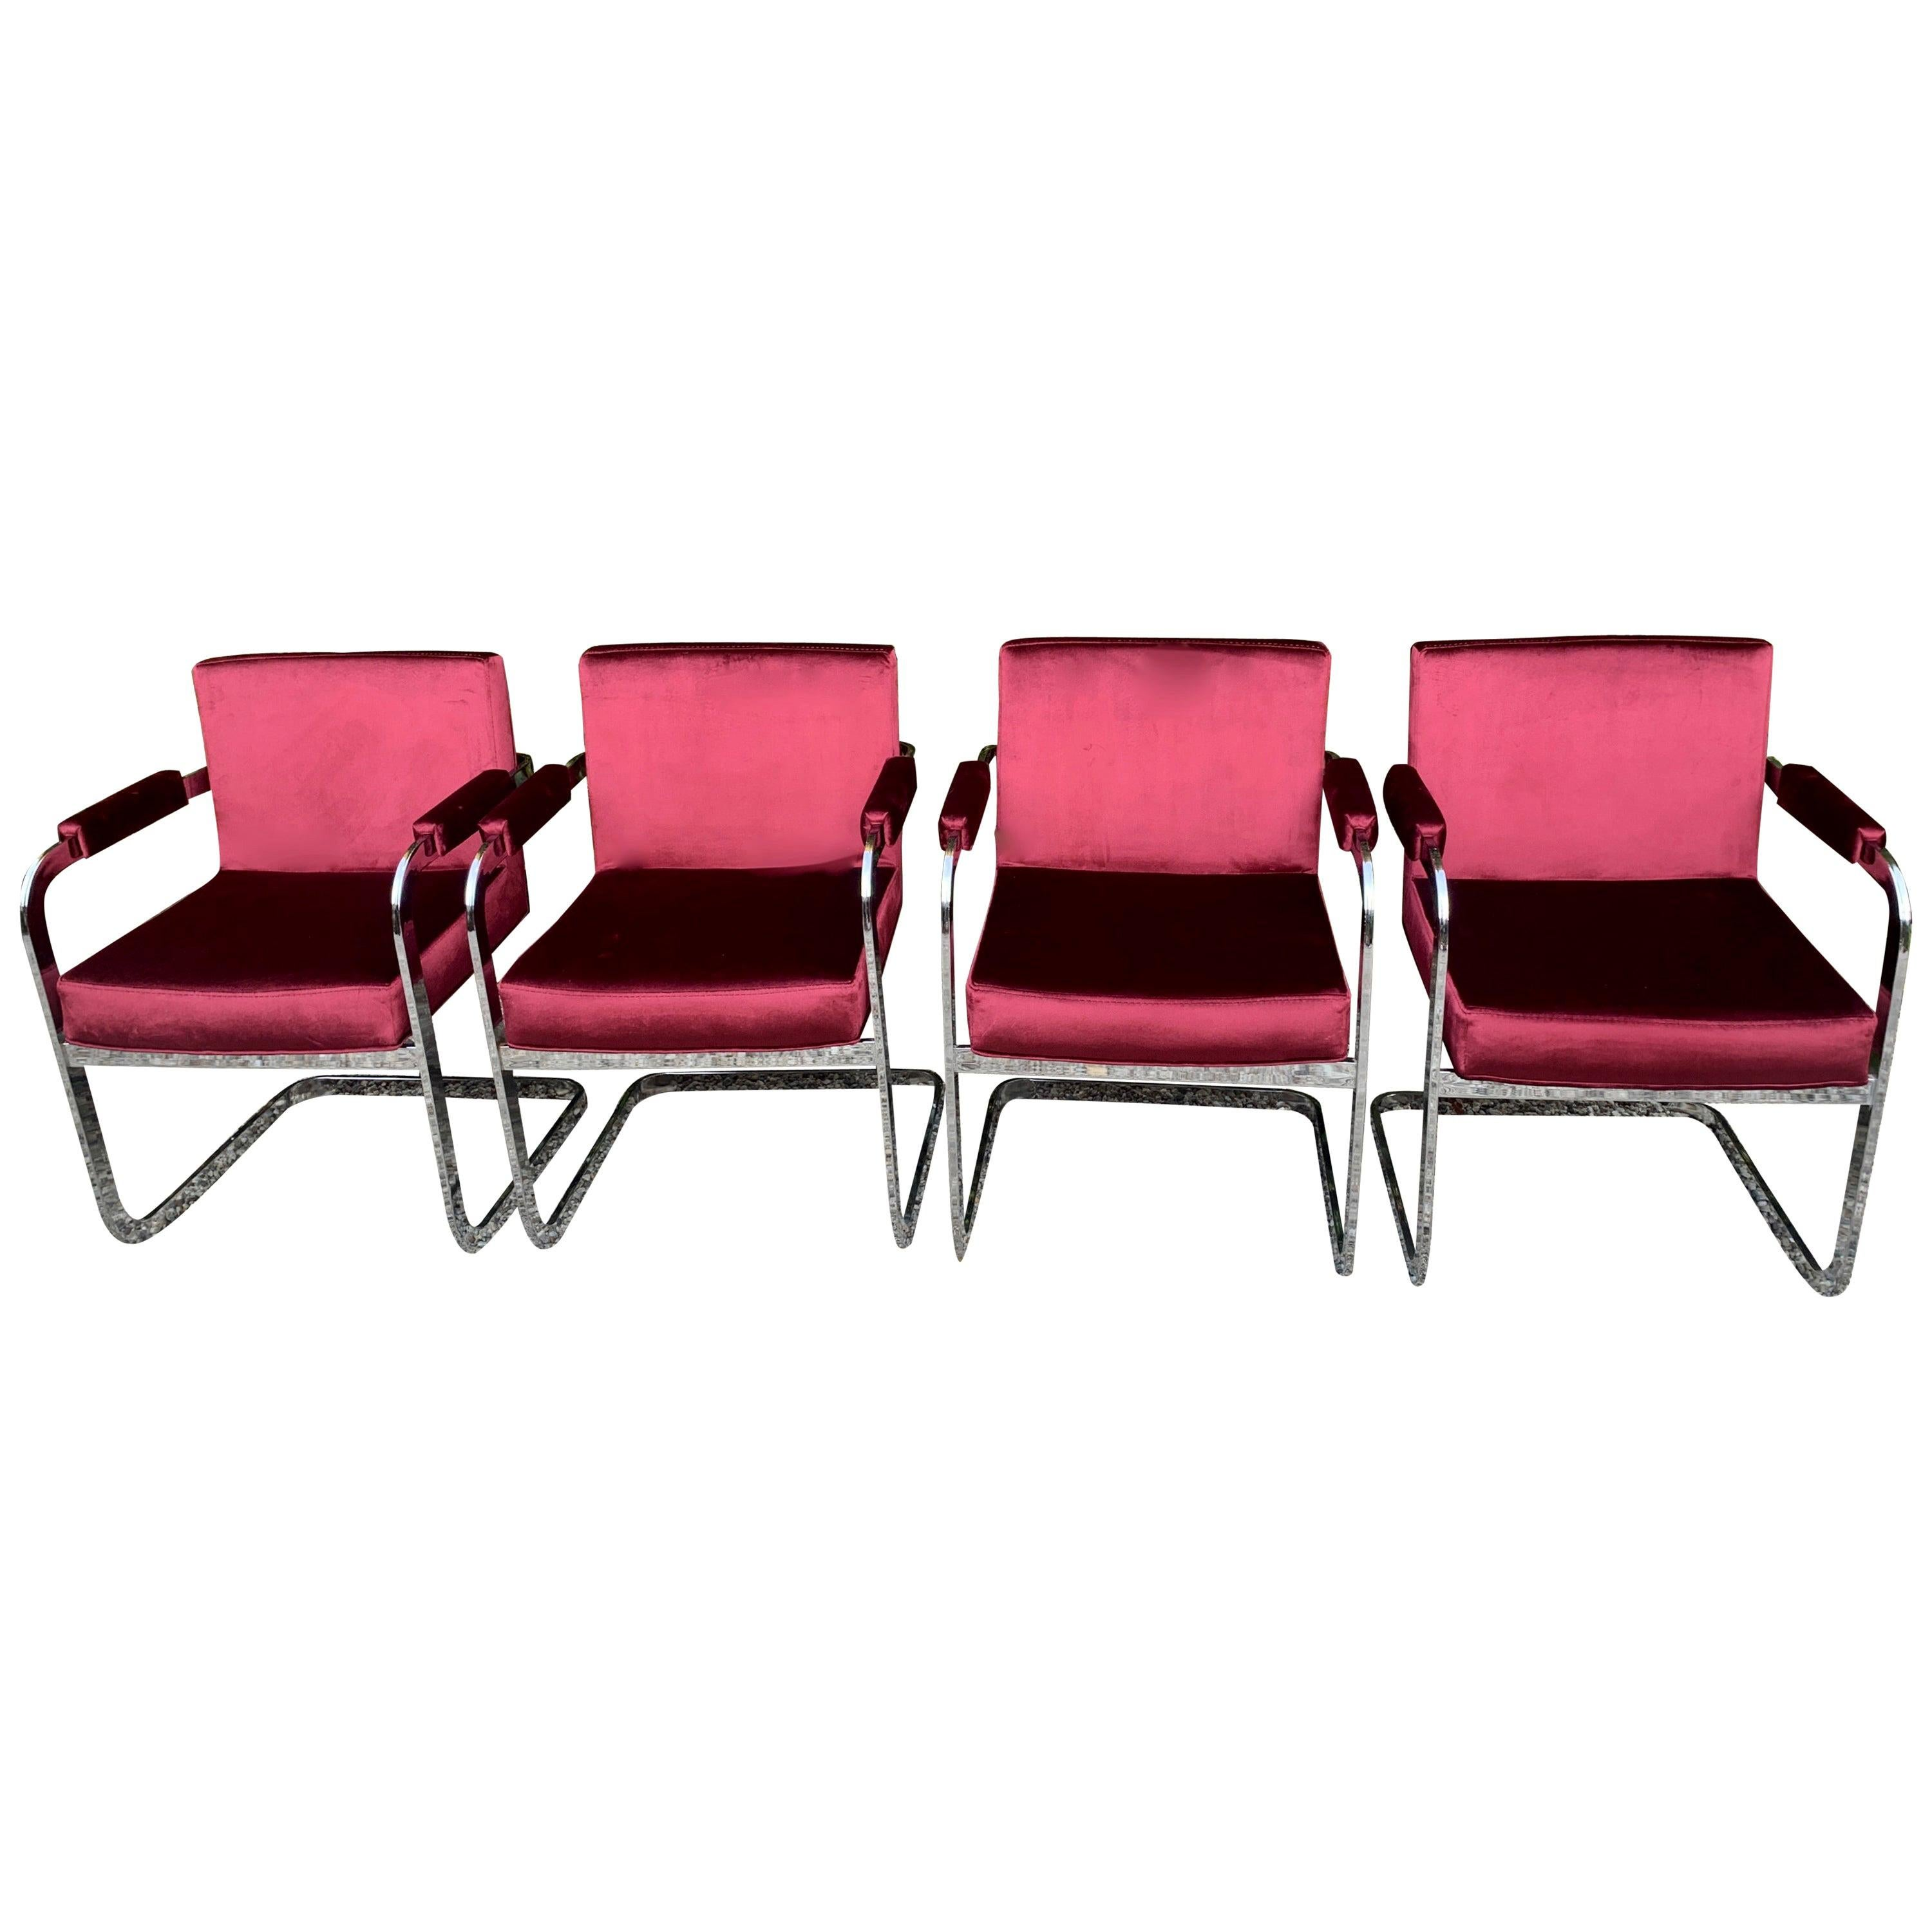 Set of Four Milo Baughman for Thayer Coggin Chrome Dining Chairs